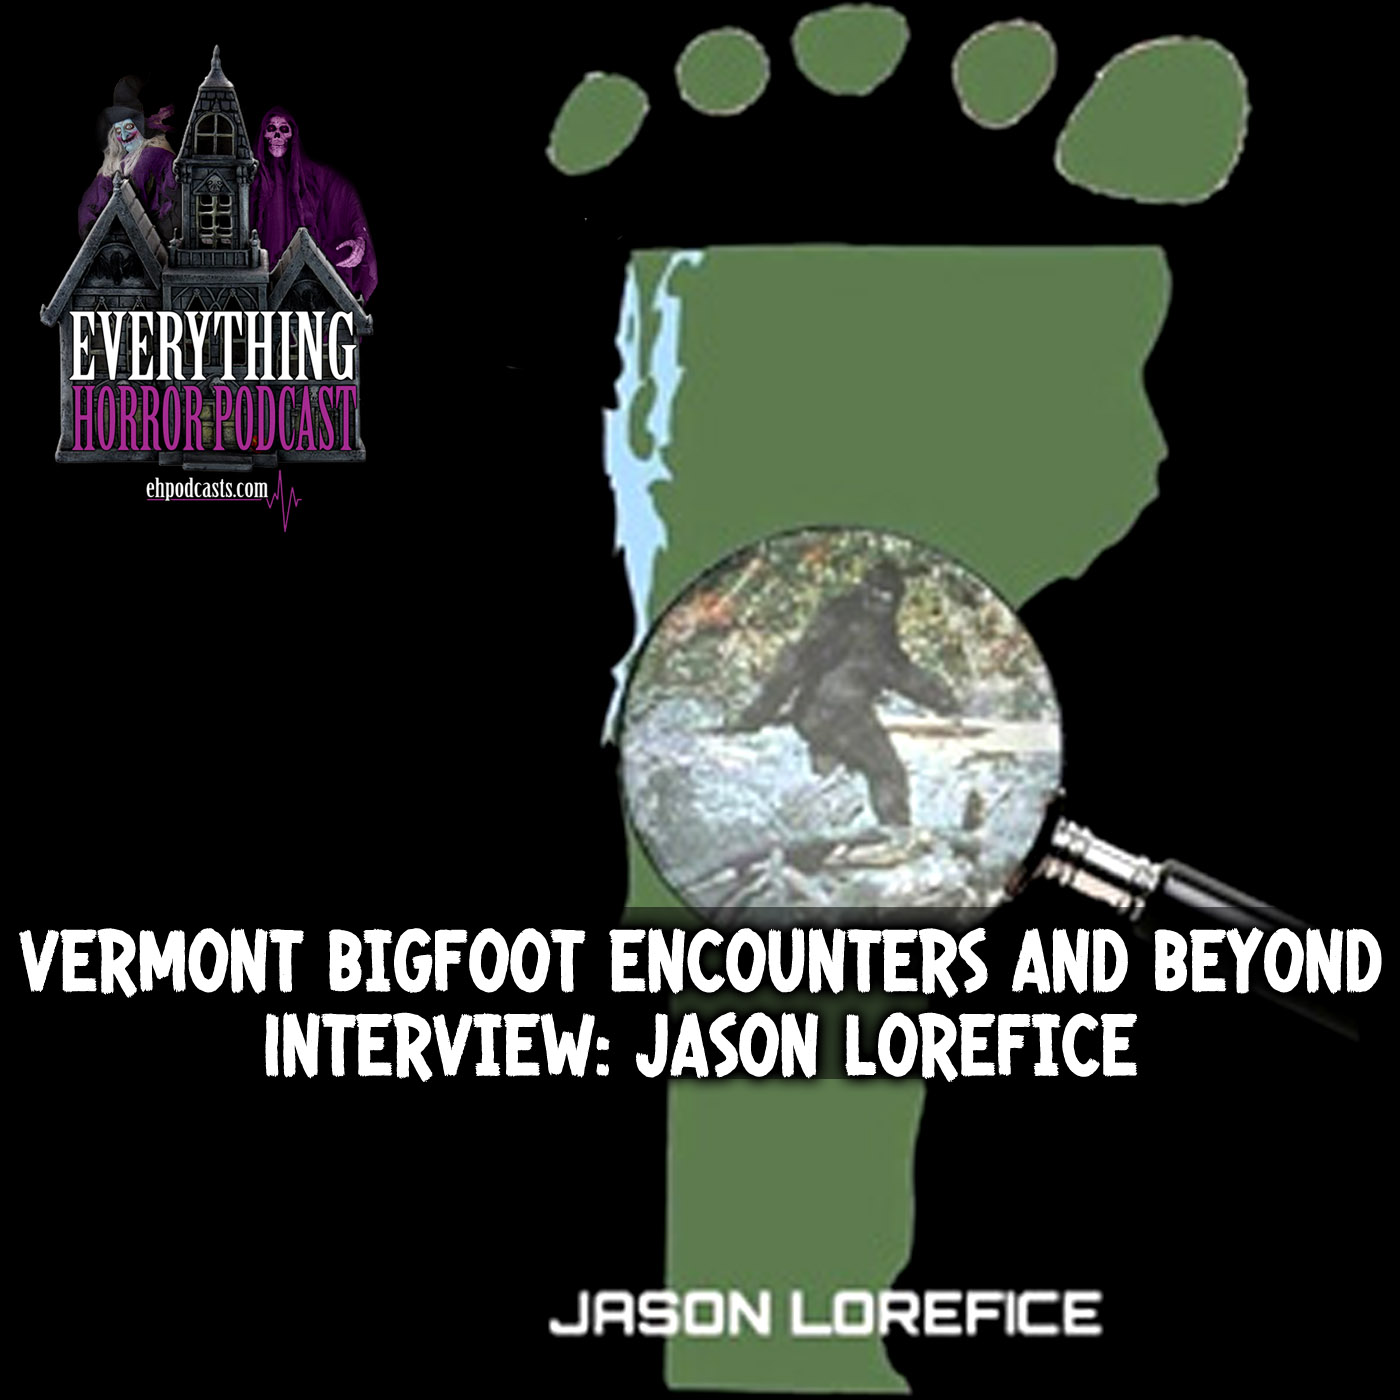 Interview: Jason Lorefice | Vermont Bigfoot Encounters and Beyond (Part 1)